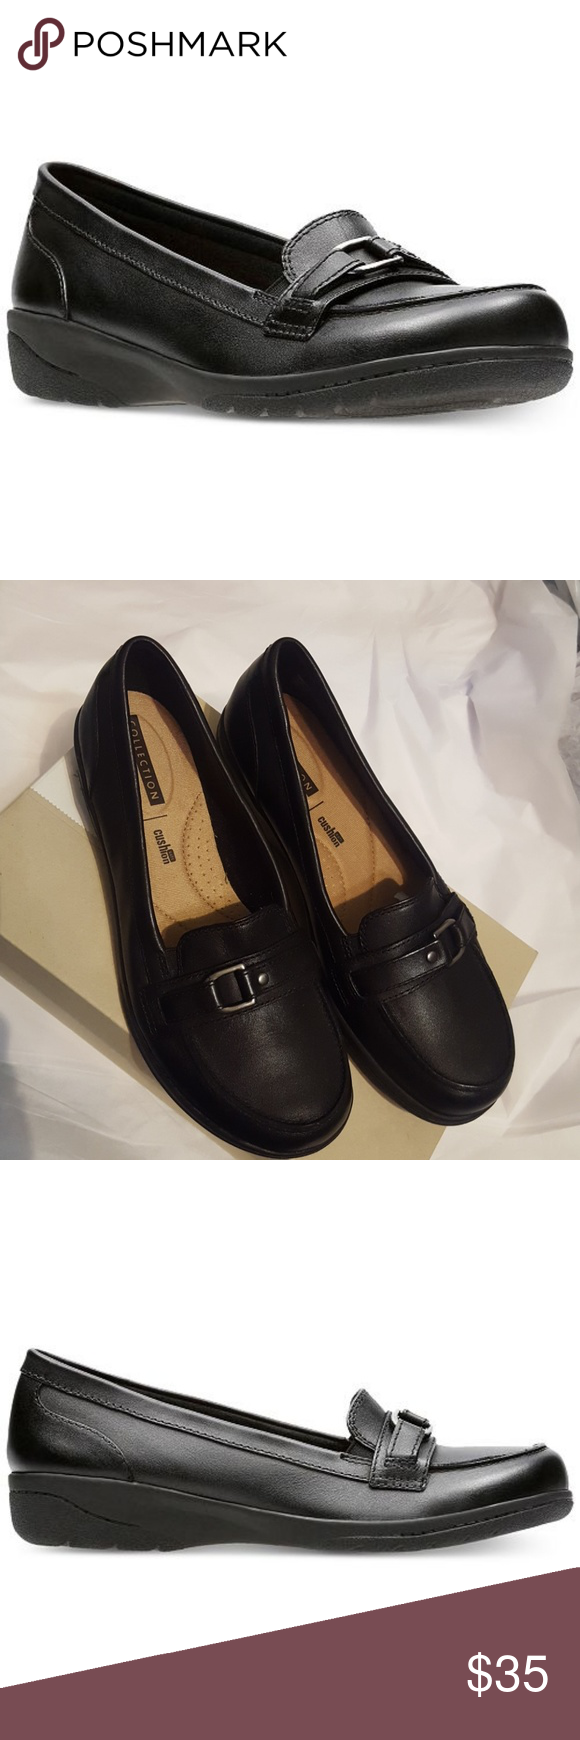 d4e922dc38c Clarks! New in box! Clarks Cheyn Marie Women s Loafer from the Clarks  Collection